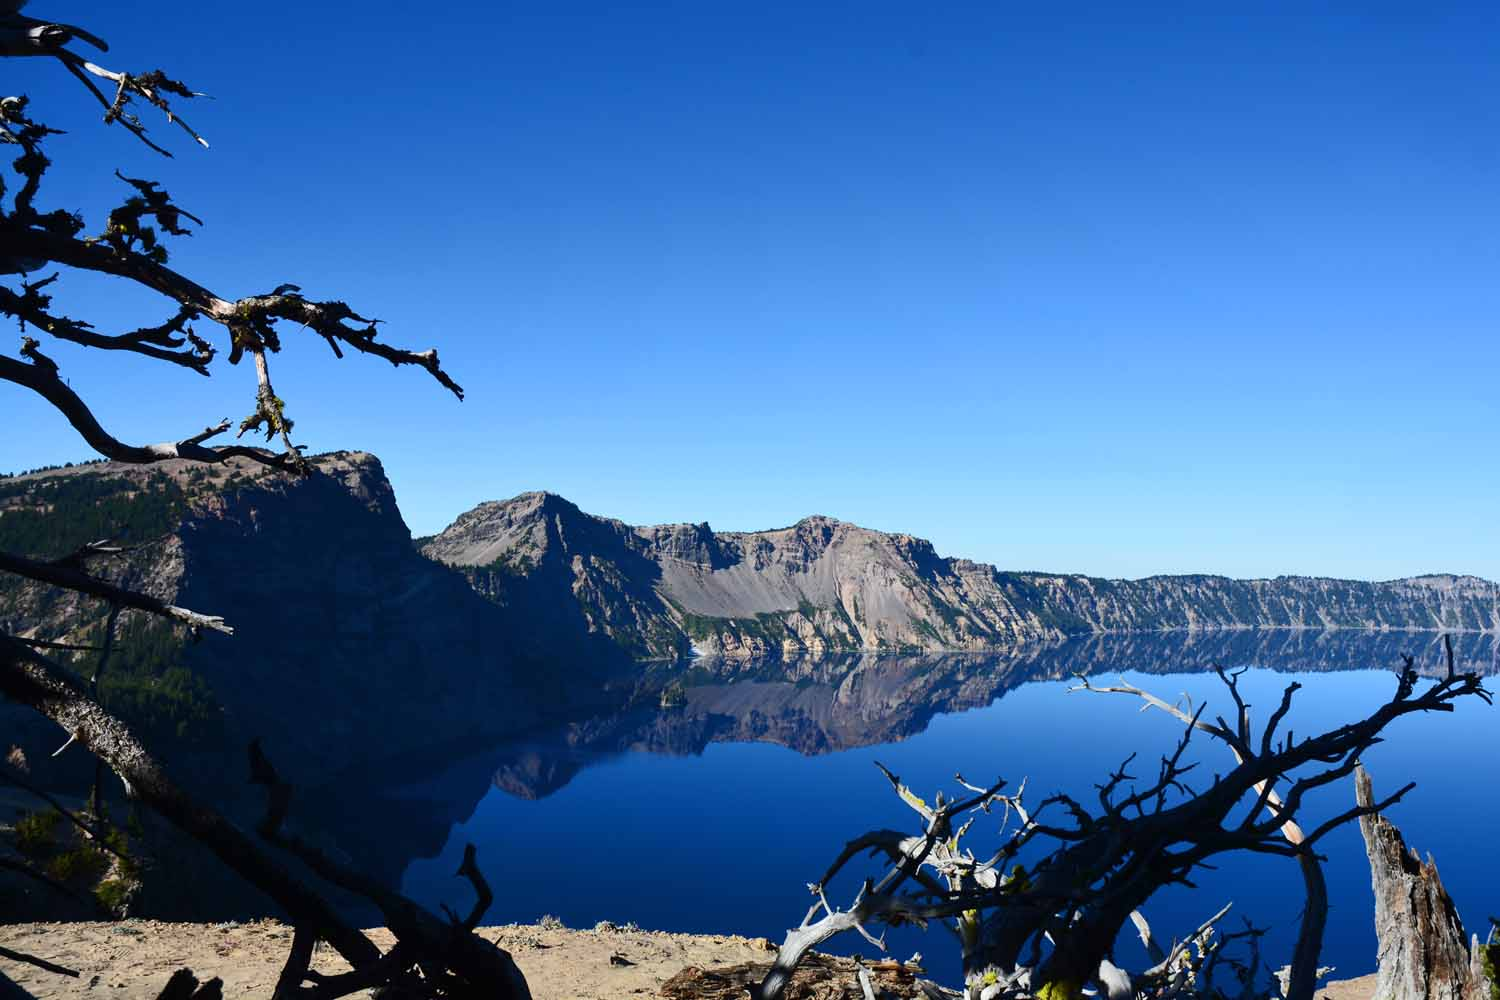 Crater Lake gets its blue color from the clear water.  There is little erosion running into the lake.  The two days we were there it was sunny and very little wind.